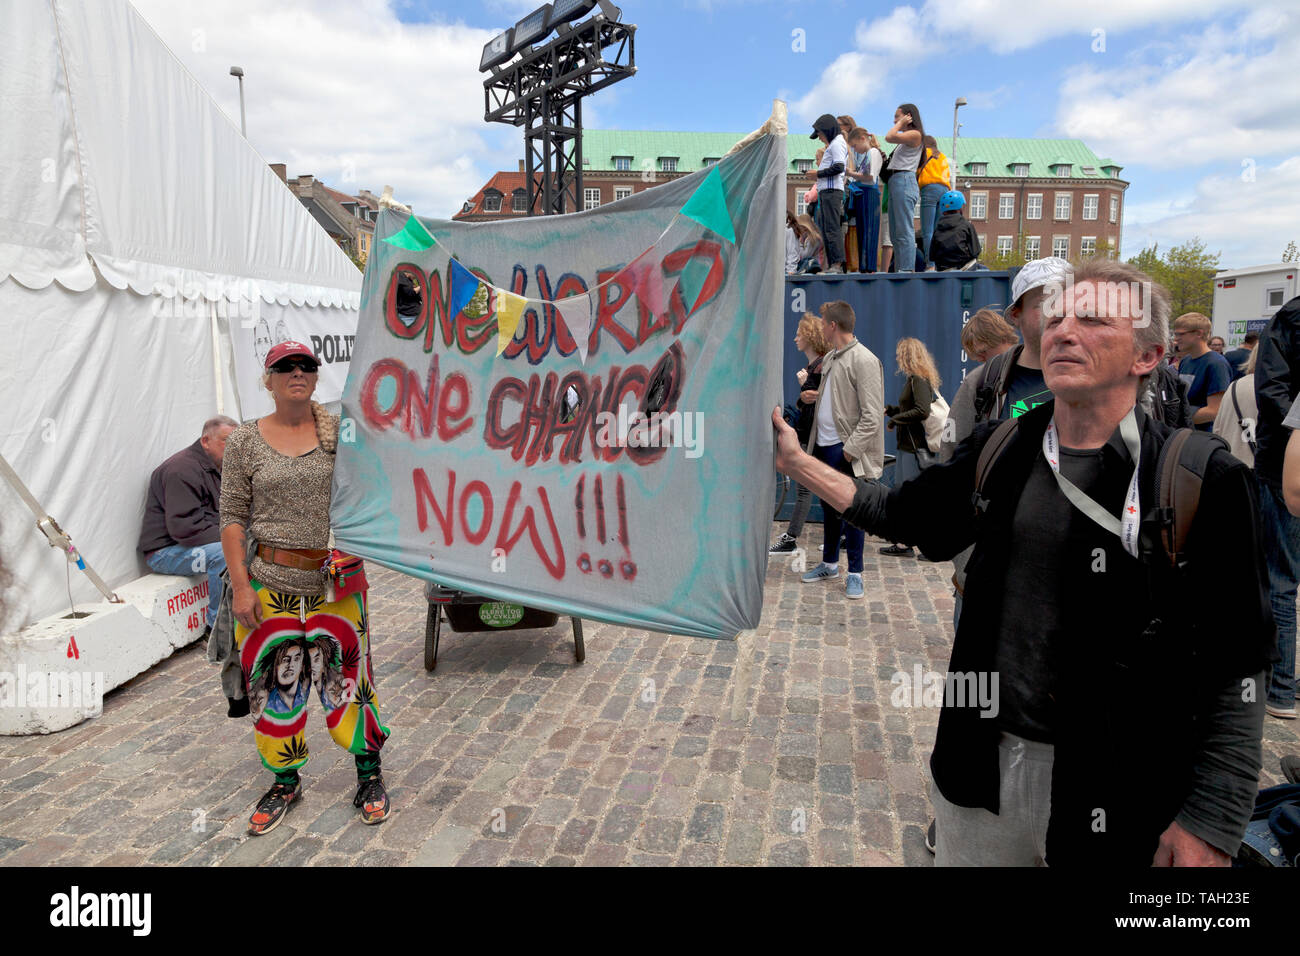 Copenhagen, Denmark. 25th May, 2019. About 30,000 people take part in the People's Climate March, the largest climate march yet in Denmark. Demonstration and speeches at Christiansborg Palace Square in front of the Danish parliament. Speeches by, among others, Danish politicians and Swedish 16 year old climate activist Greta Thunberg. Many Danish politicians from most political parties are present, interest probably enhanced by the electoral campaign for the upcoming EU Parliament election in Denmark tomorrow and the Danish general election on 5th June this year. Credit: Niels Quist/Alamy. - Stock Image